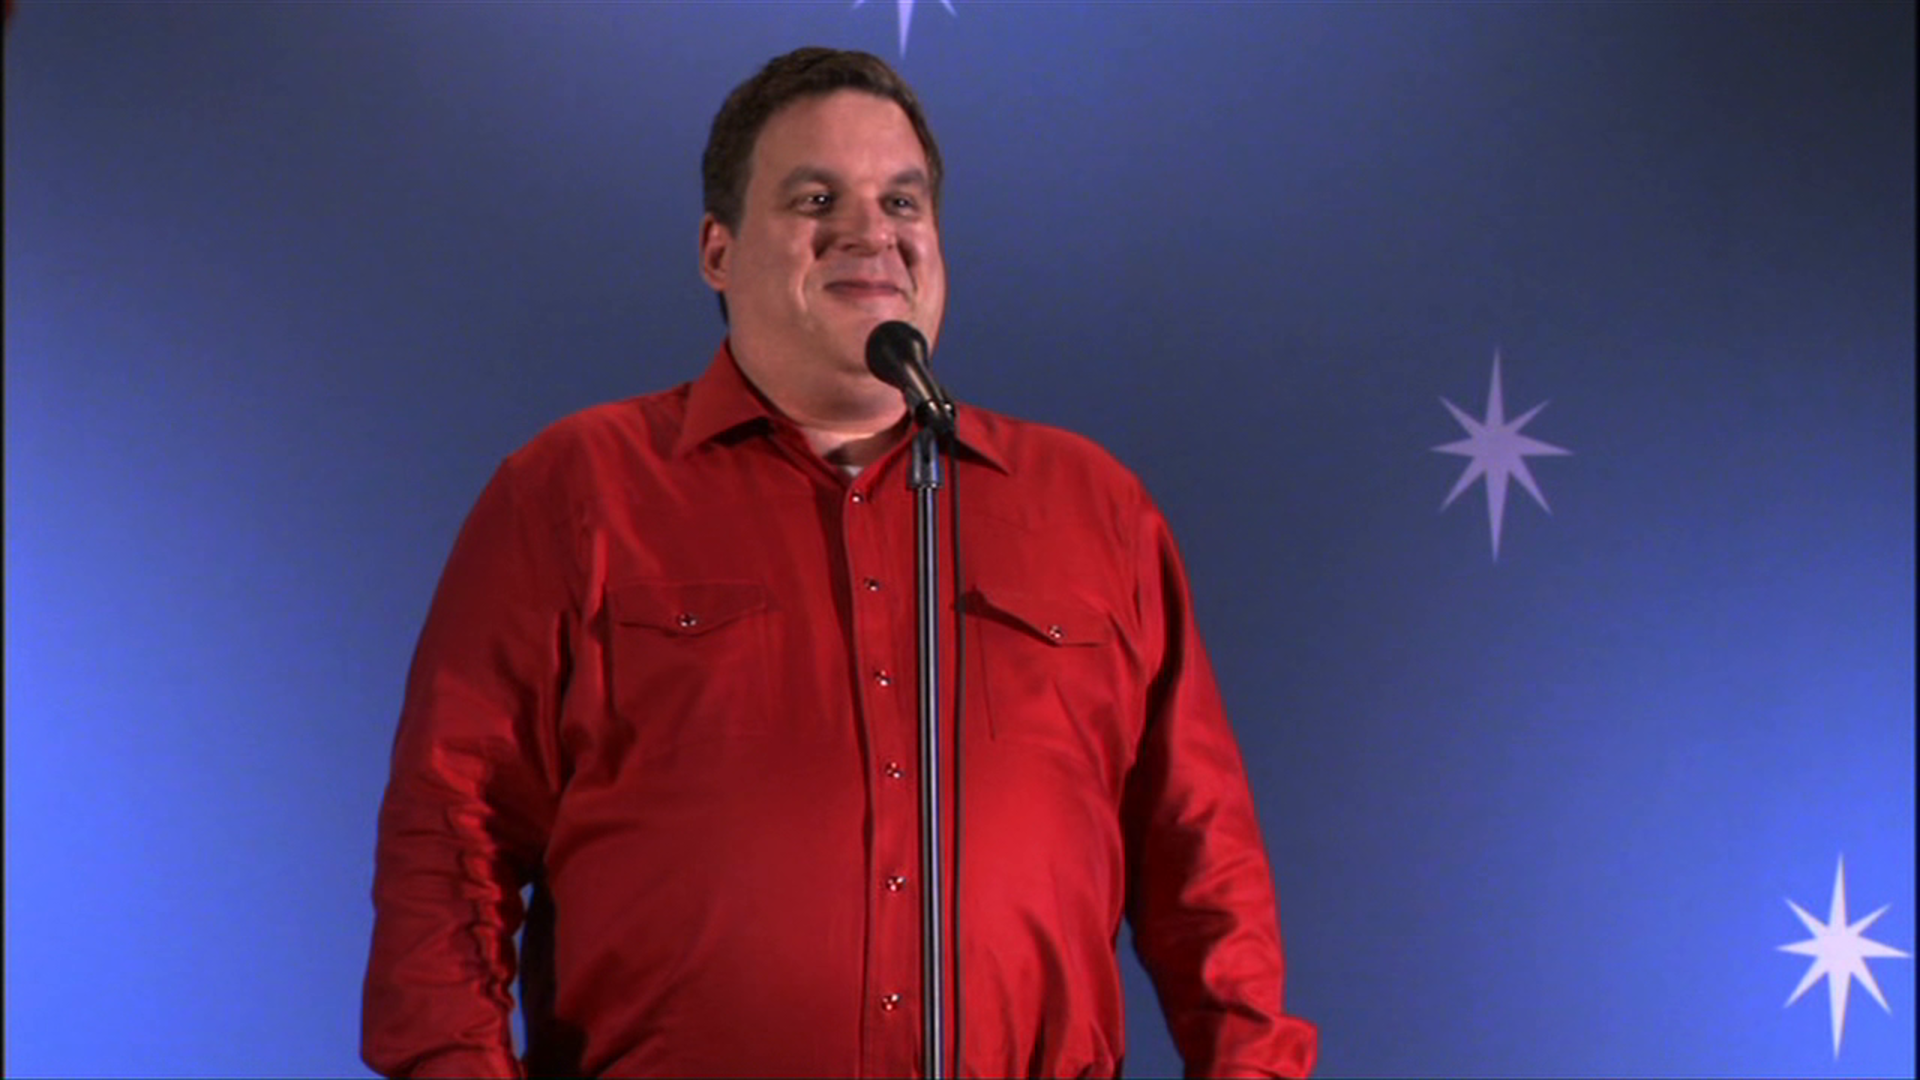 ShoutFactoryTV : Watch Young And Handsome: A Night With Jeff Garlin